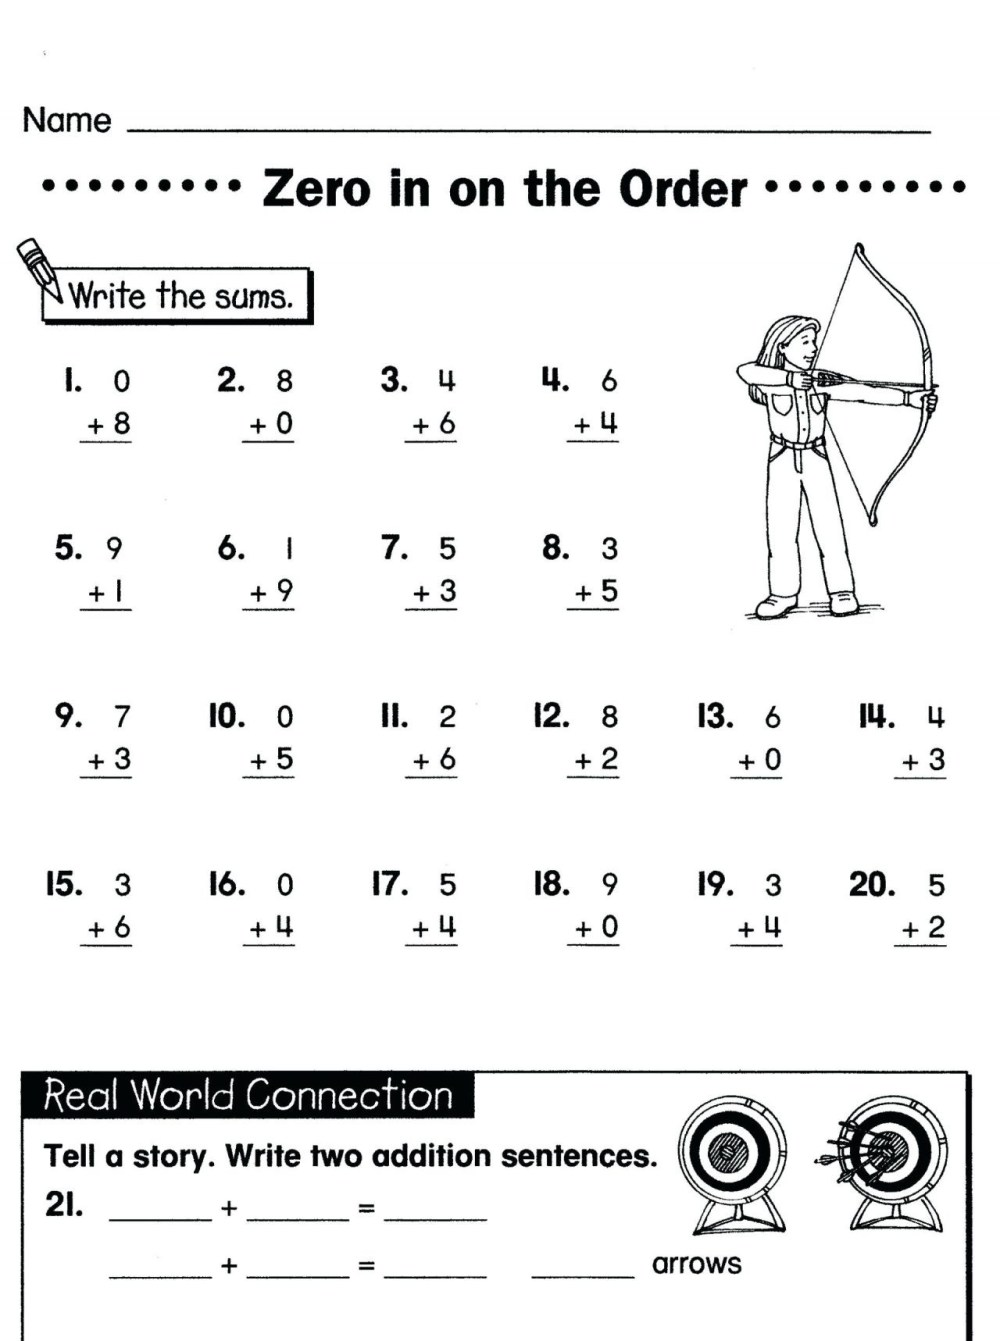 medium resolution of 4 Free Math Worksheets Second Grade 2 Multiplication Multiplication Table 5  10 - apocalomegaproductions.com